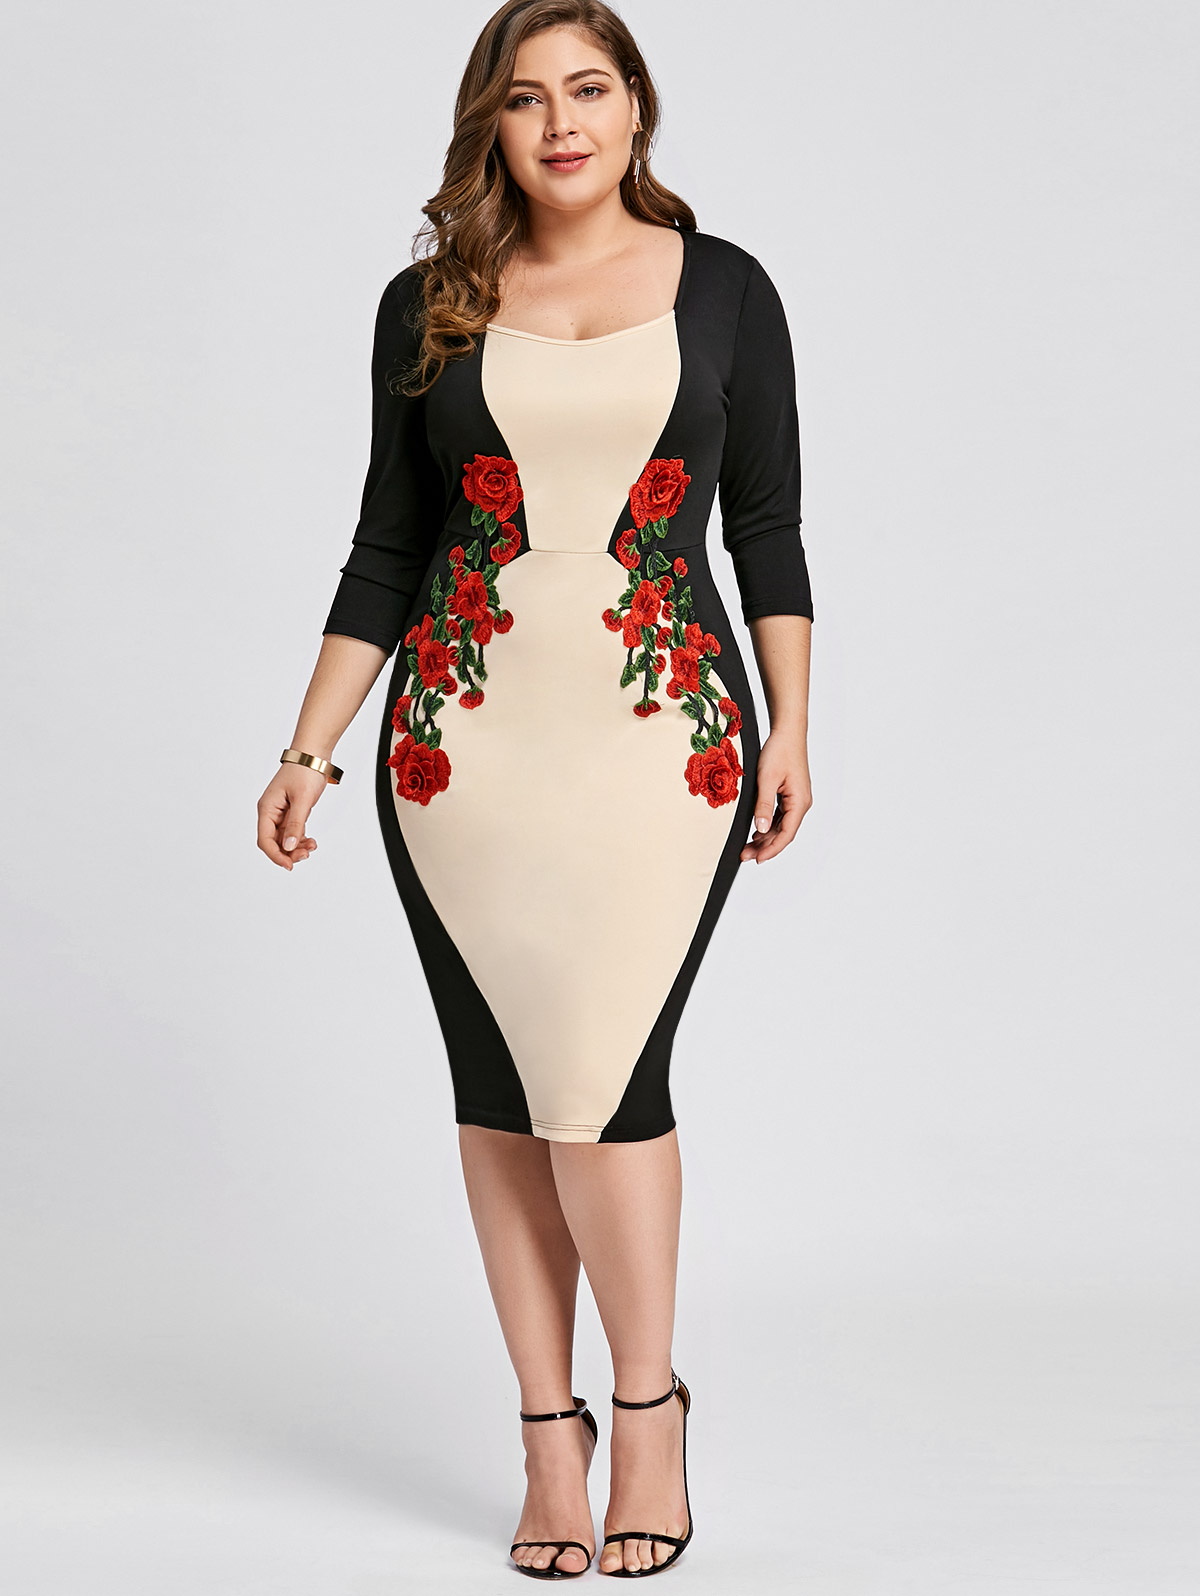 d442e3150f8 Details about Plus Size Women 3/4 Sleeve Bodycon Dress Ladies Baggy Midi  Dress Office OL Work